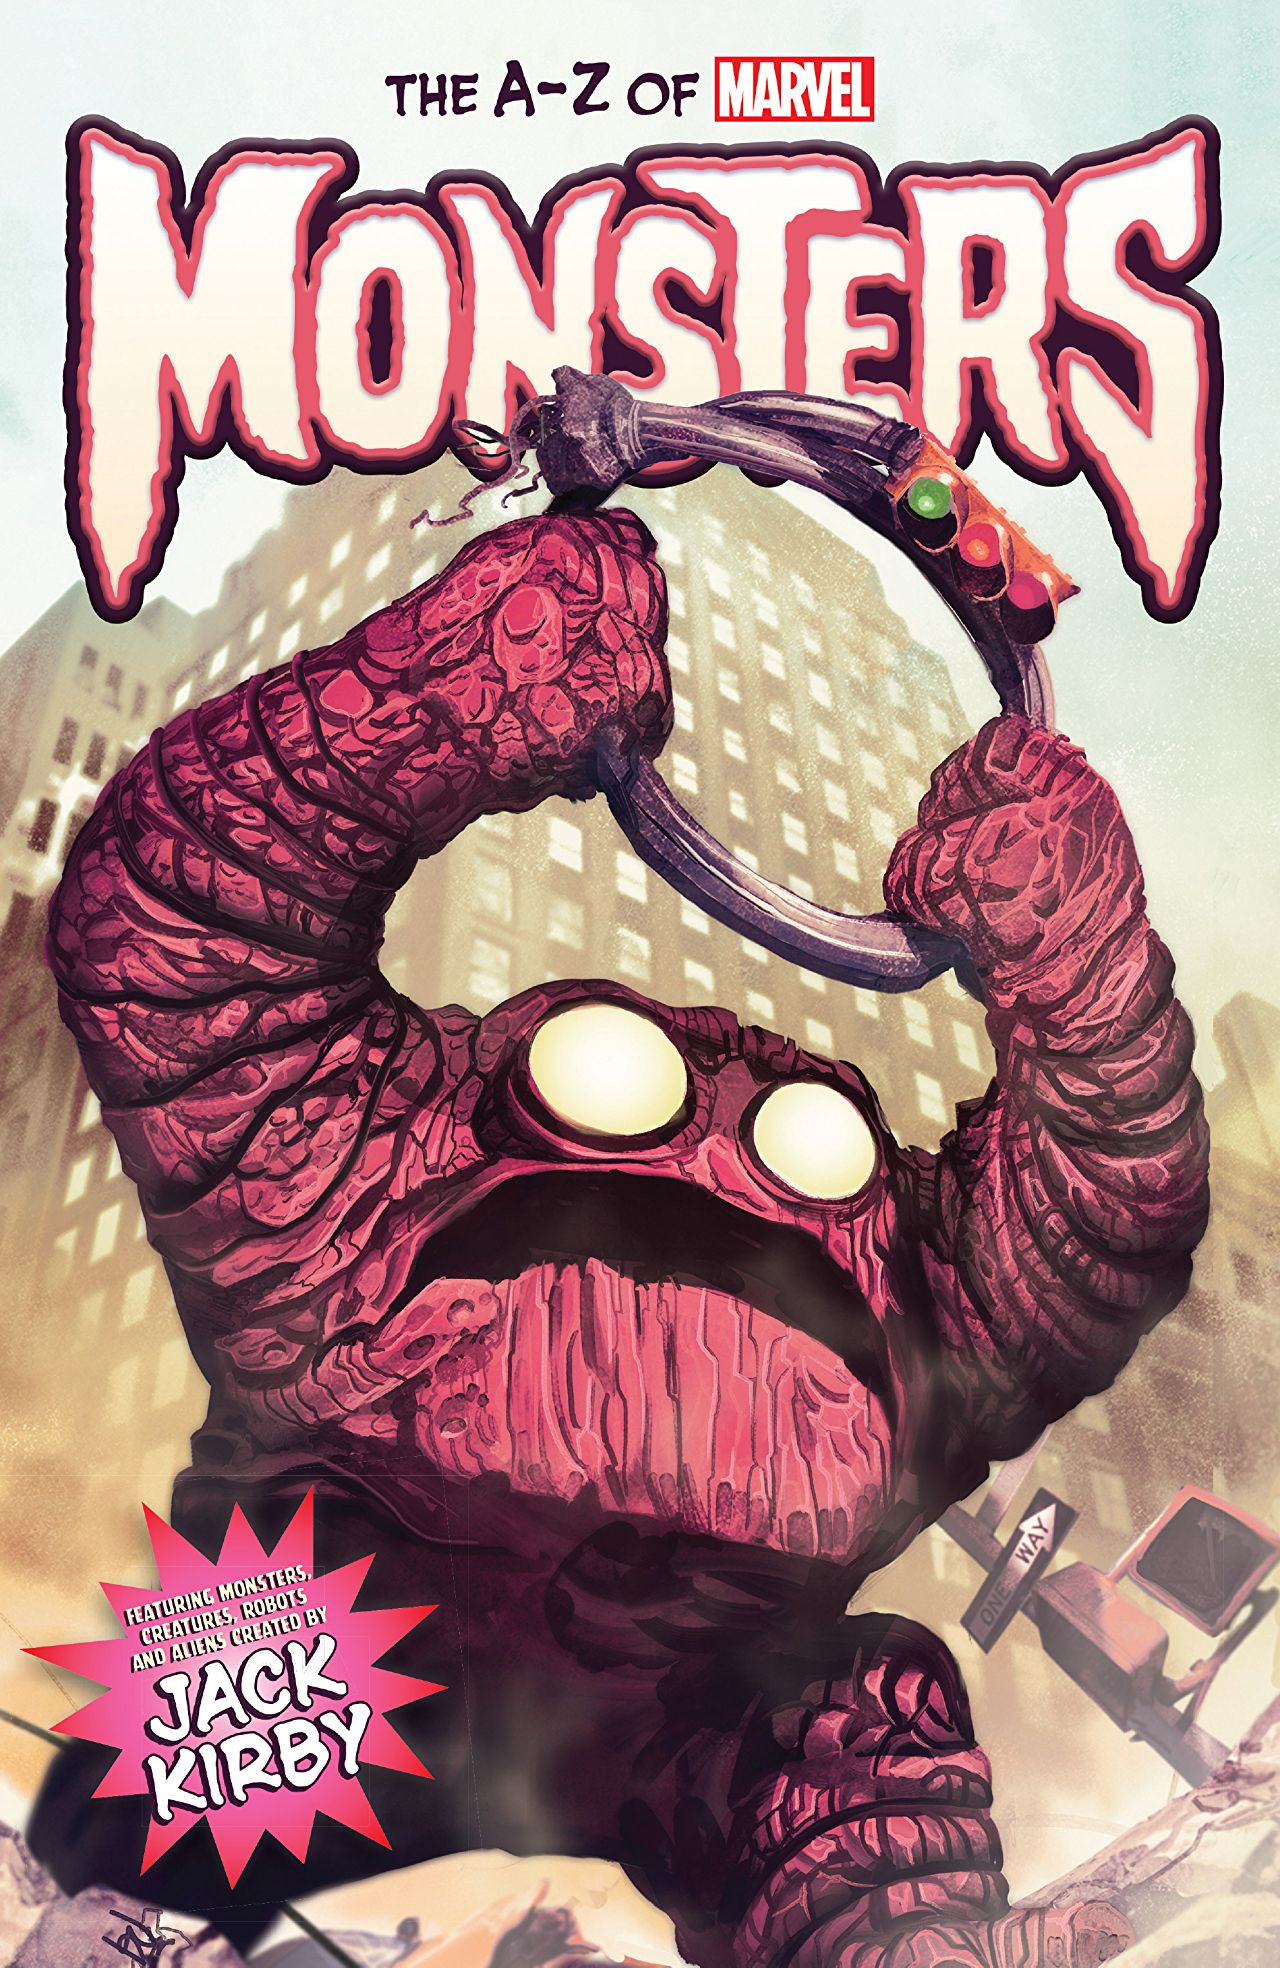 A-Z of Marvel Monsters Vol 1 1